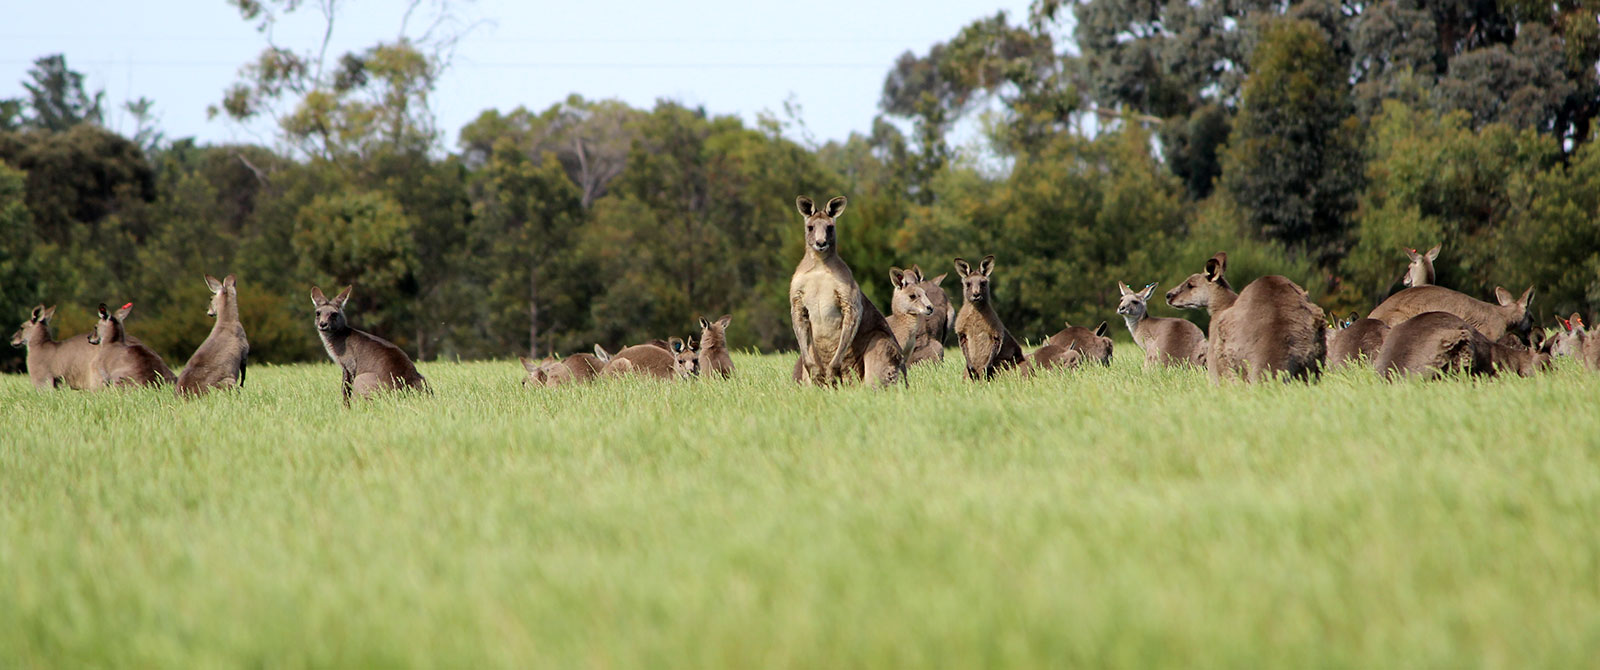 Wild Kangaroos in Australia - Echidna Walkabout Nature Tours, Melbourne